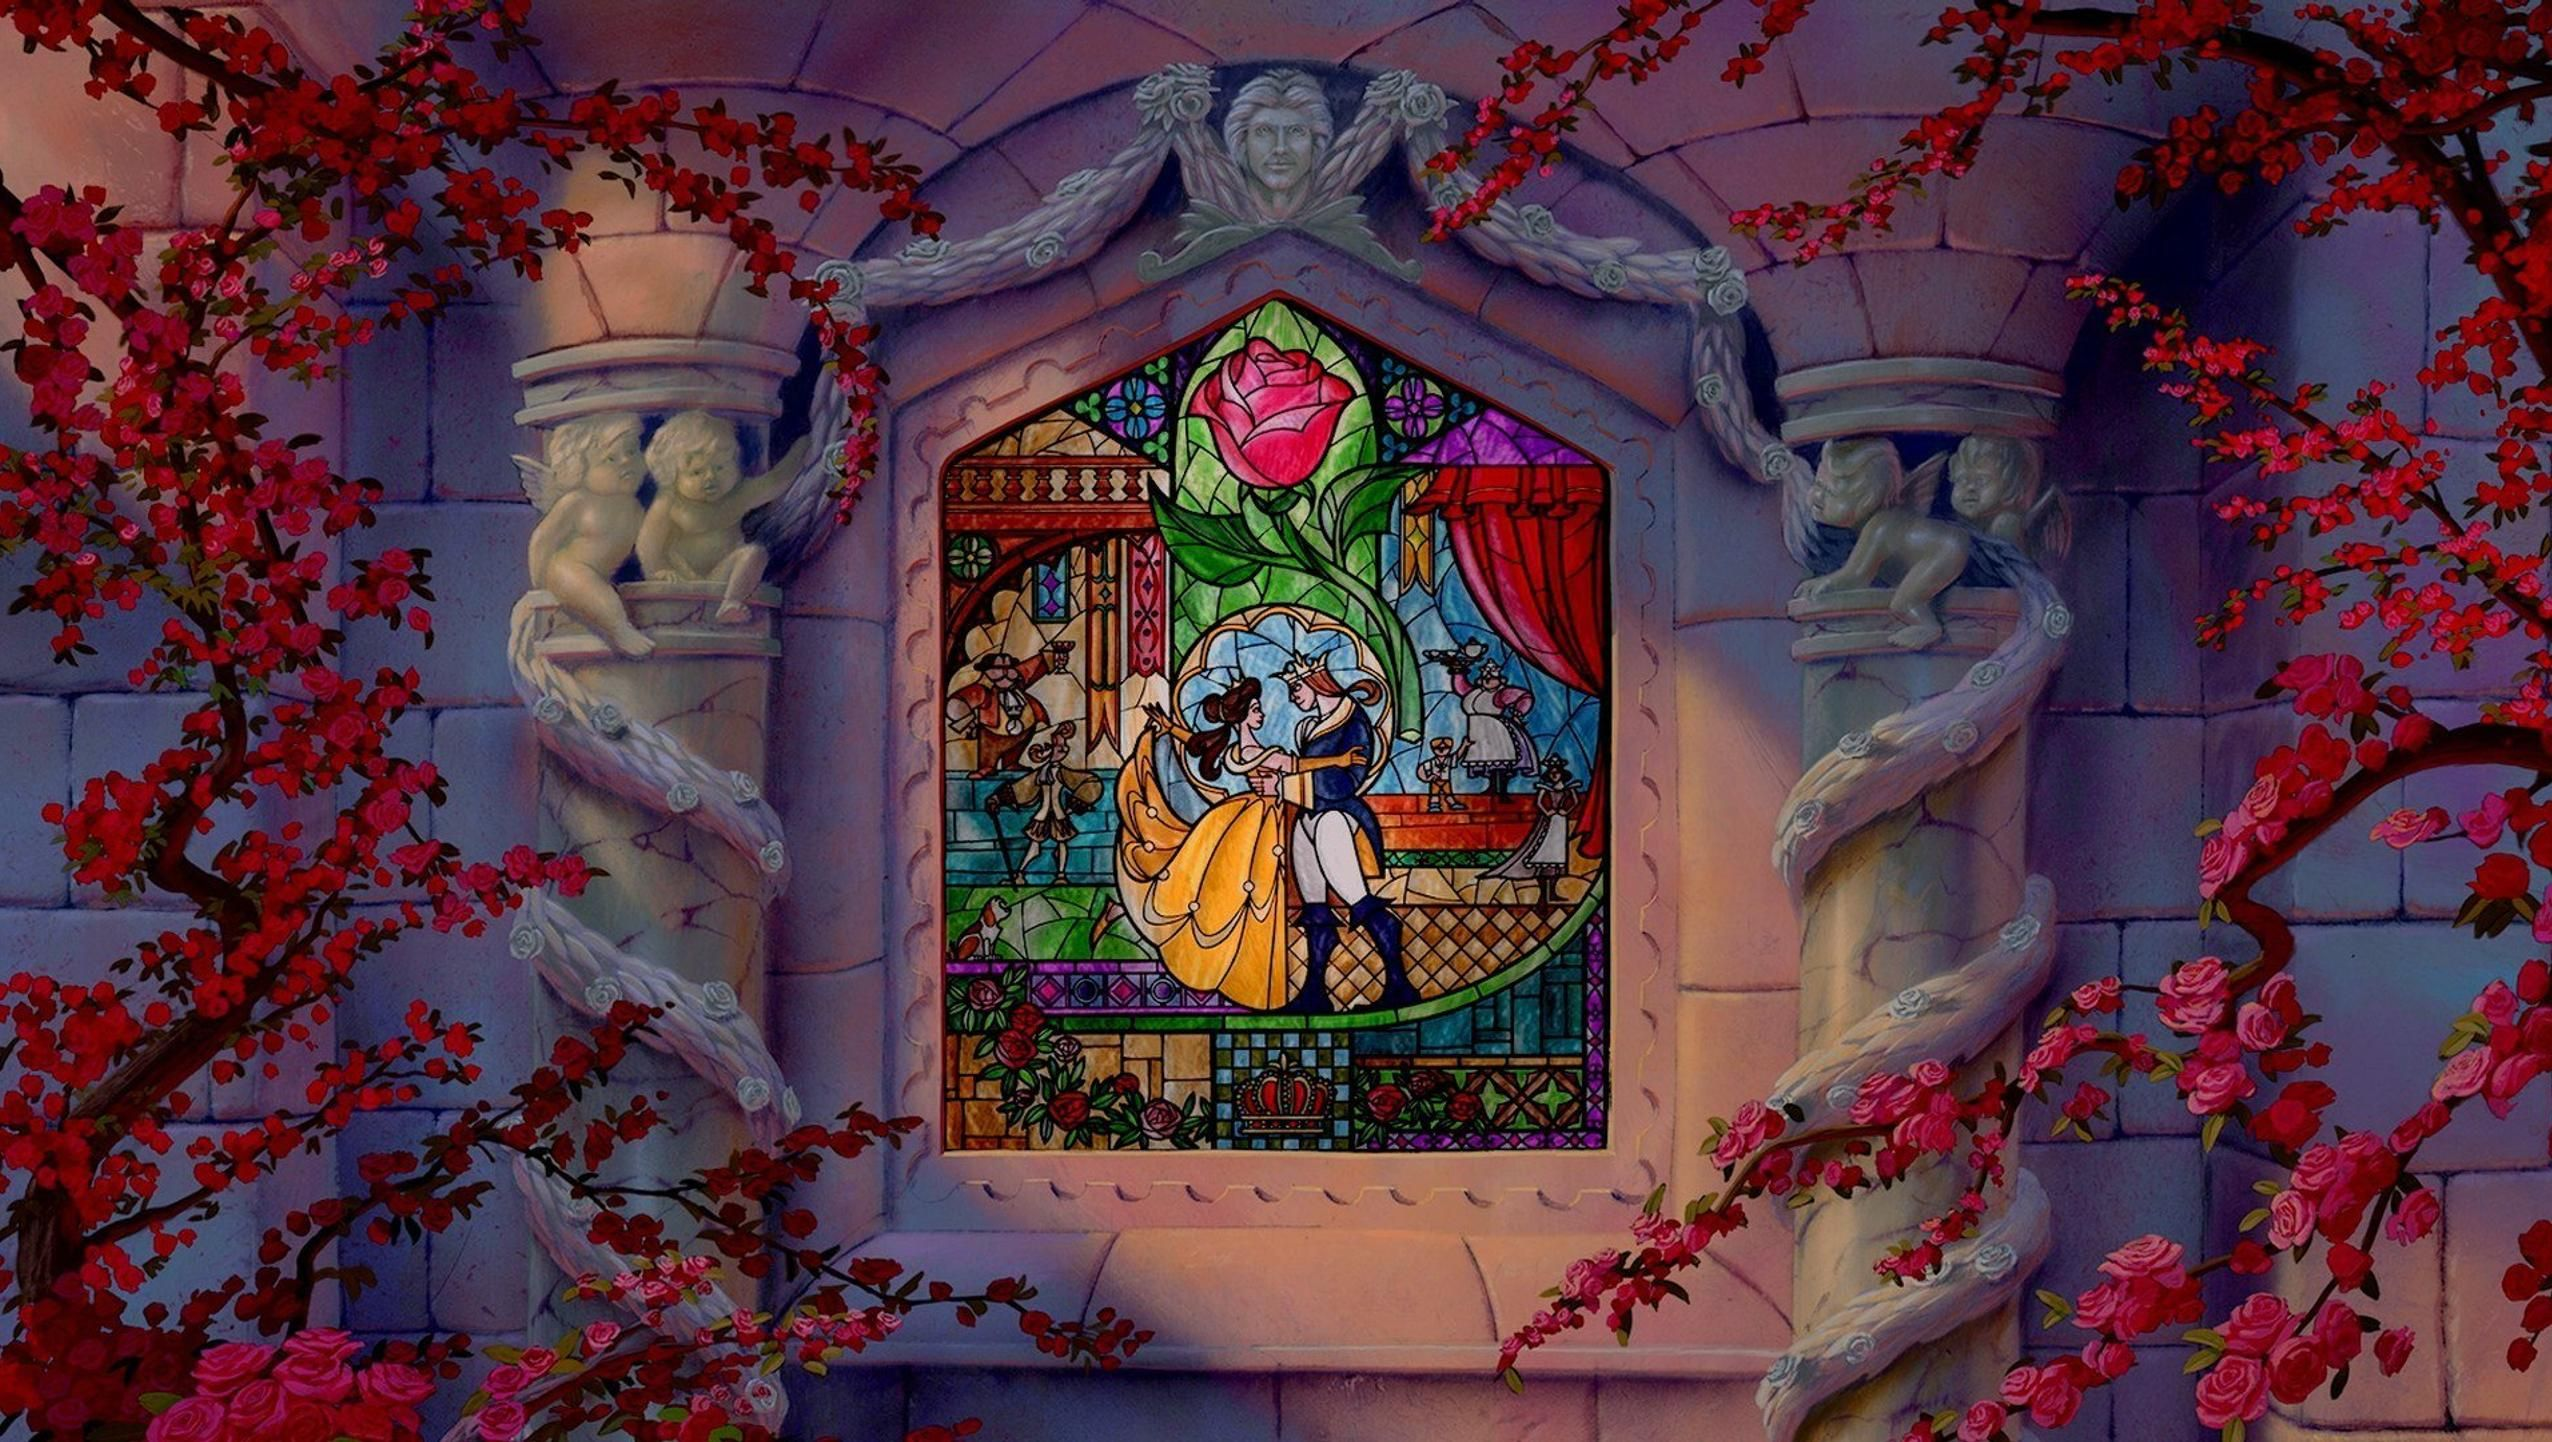 Beauty And The Beast 1991 Desktop Wallpaper In 2020 Beauty